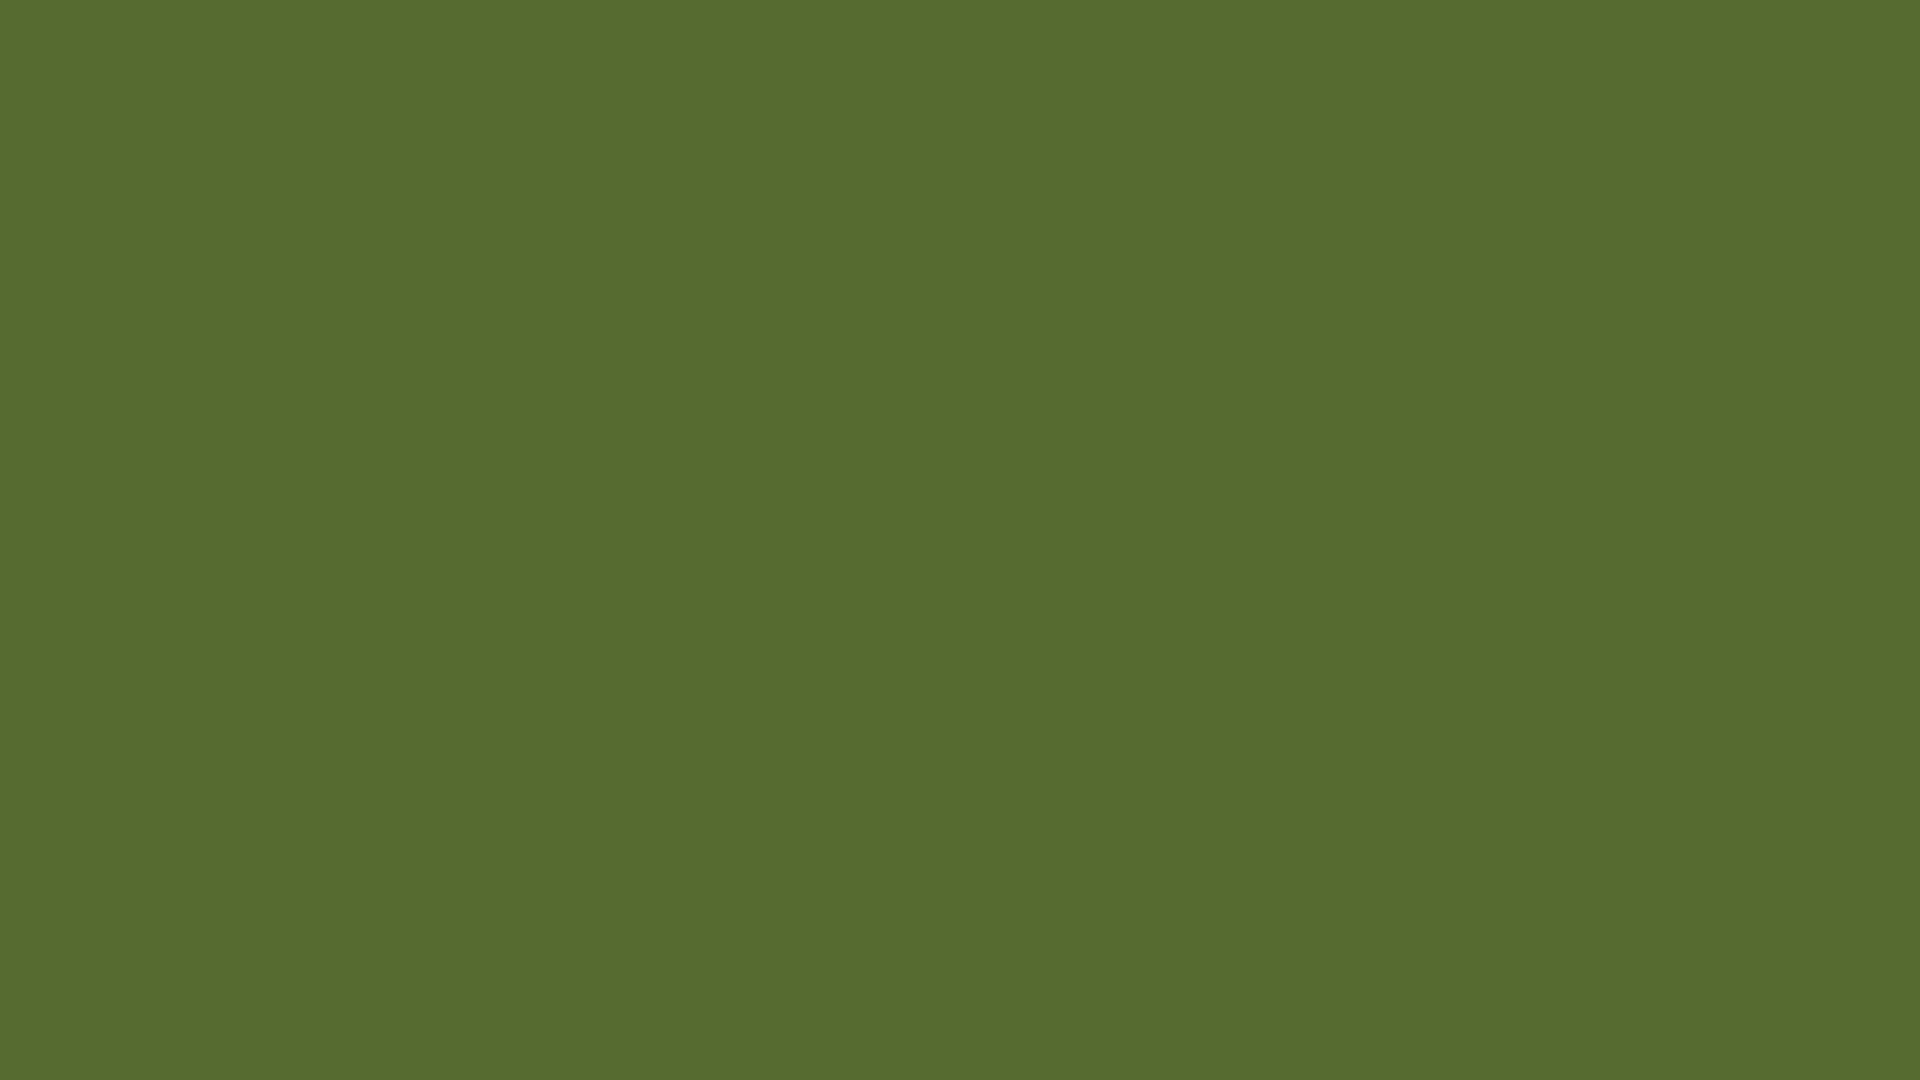 Dark olive green solid color background 1920x1080 dark olive green solid color background biocorpaavc Image collections